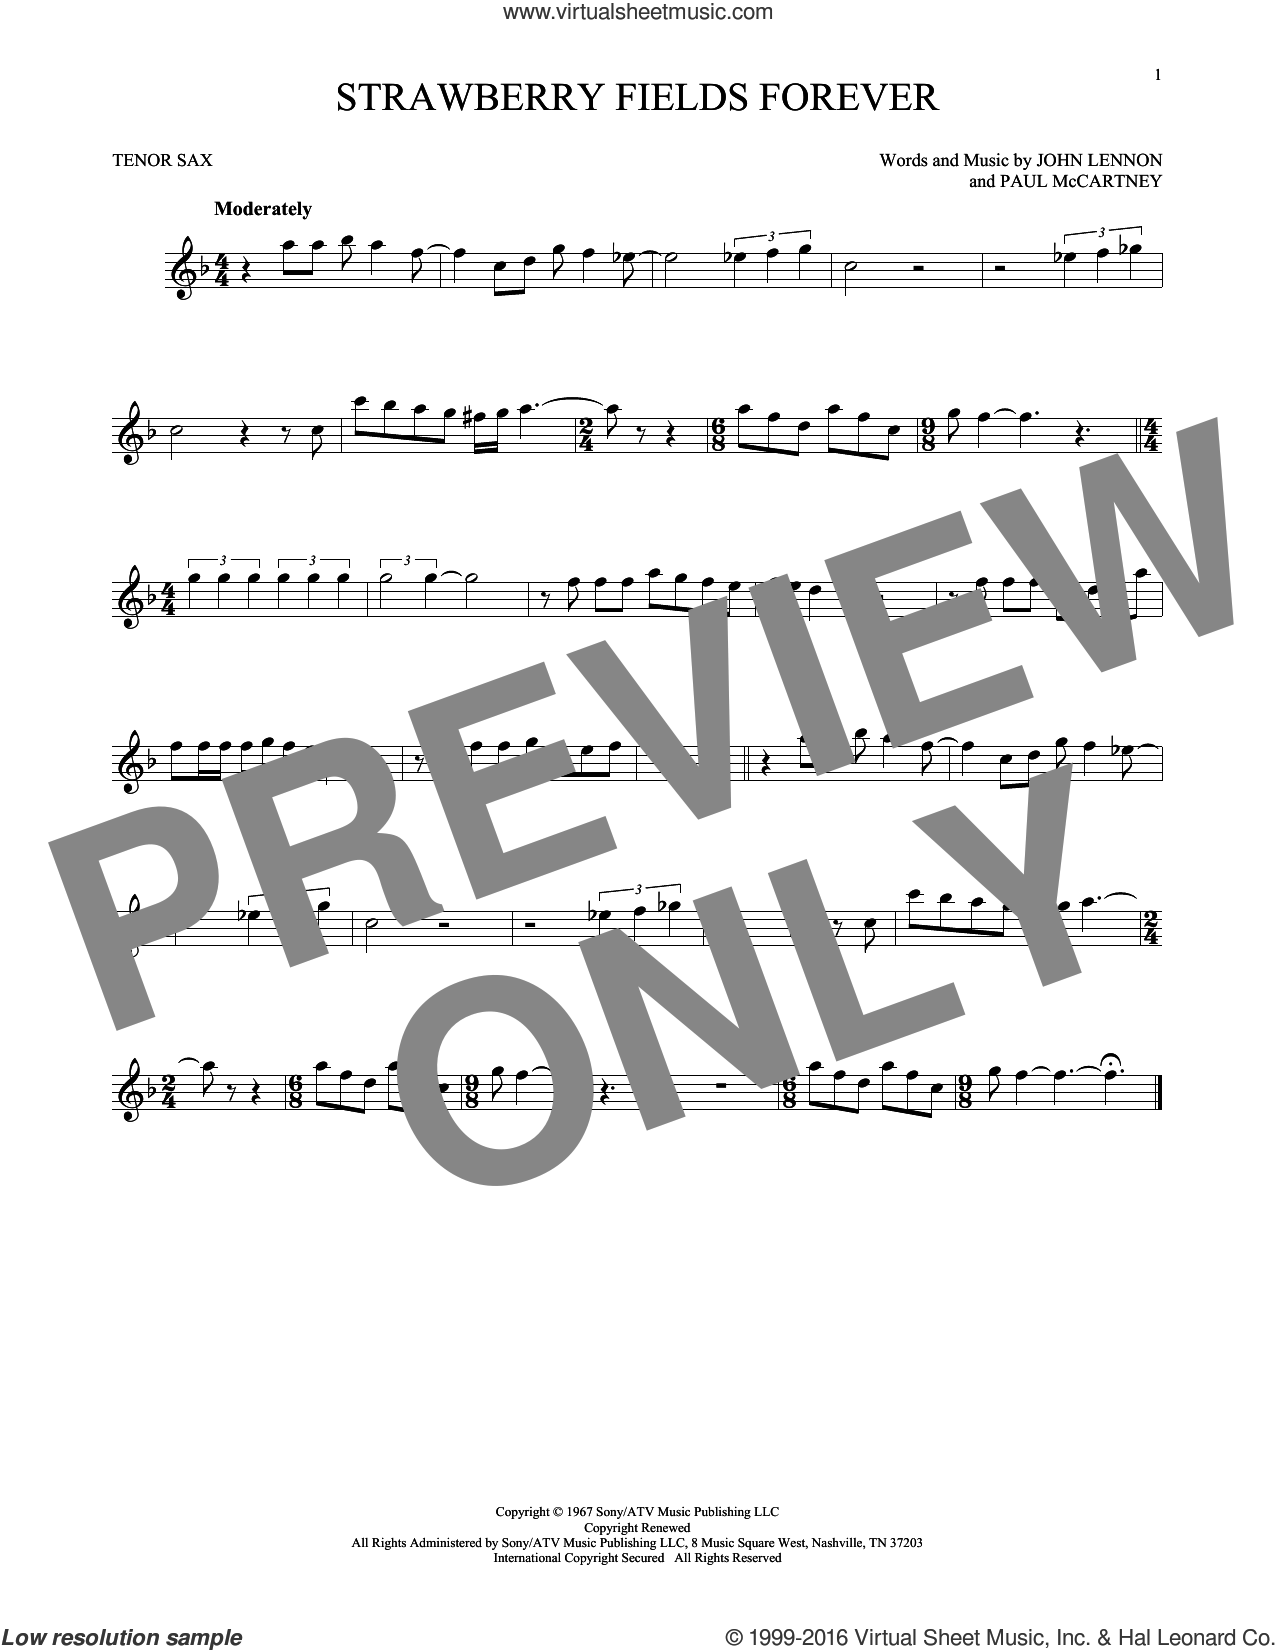 Strawberry Fields Forever sheet music for tenor saxophone solo by Paul McCartney